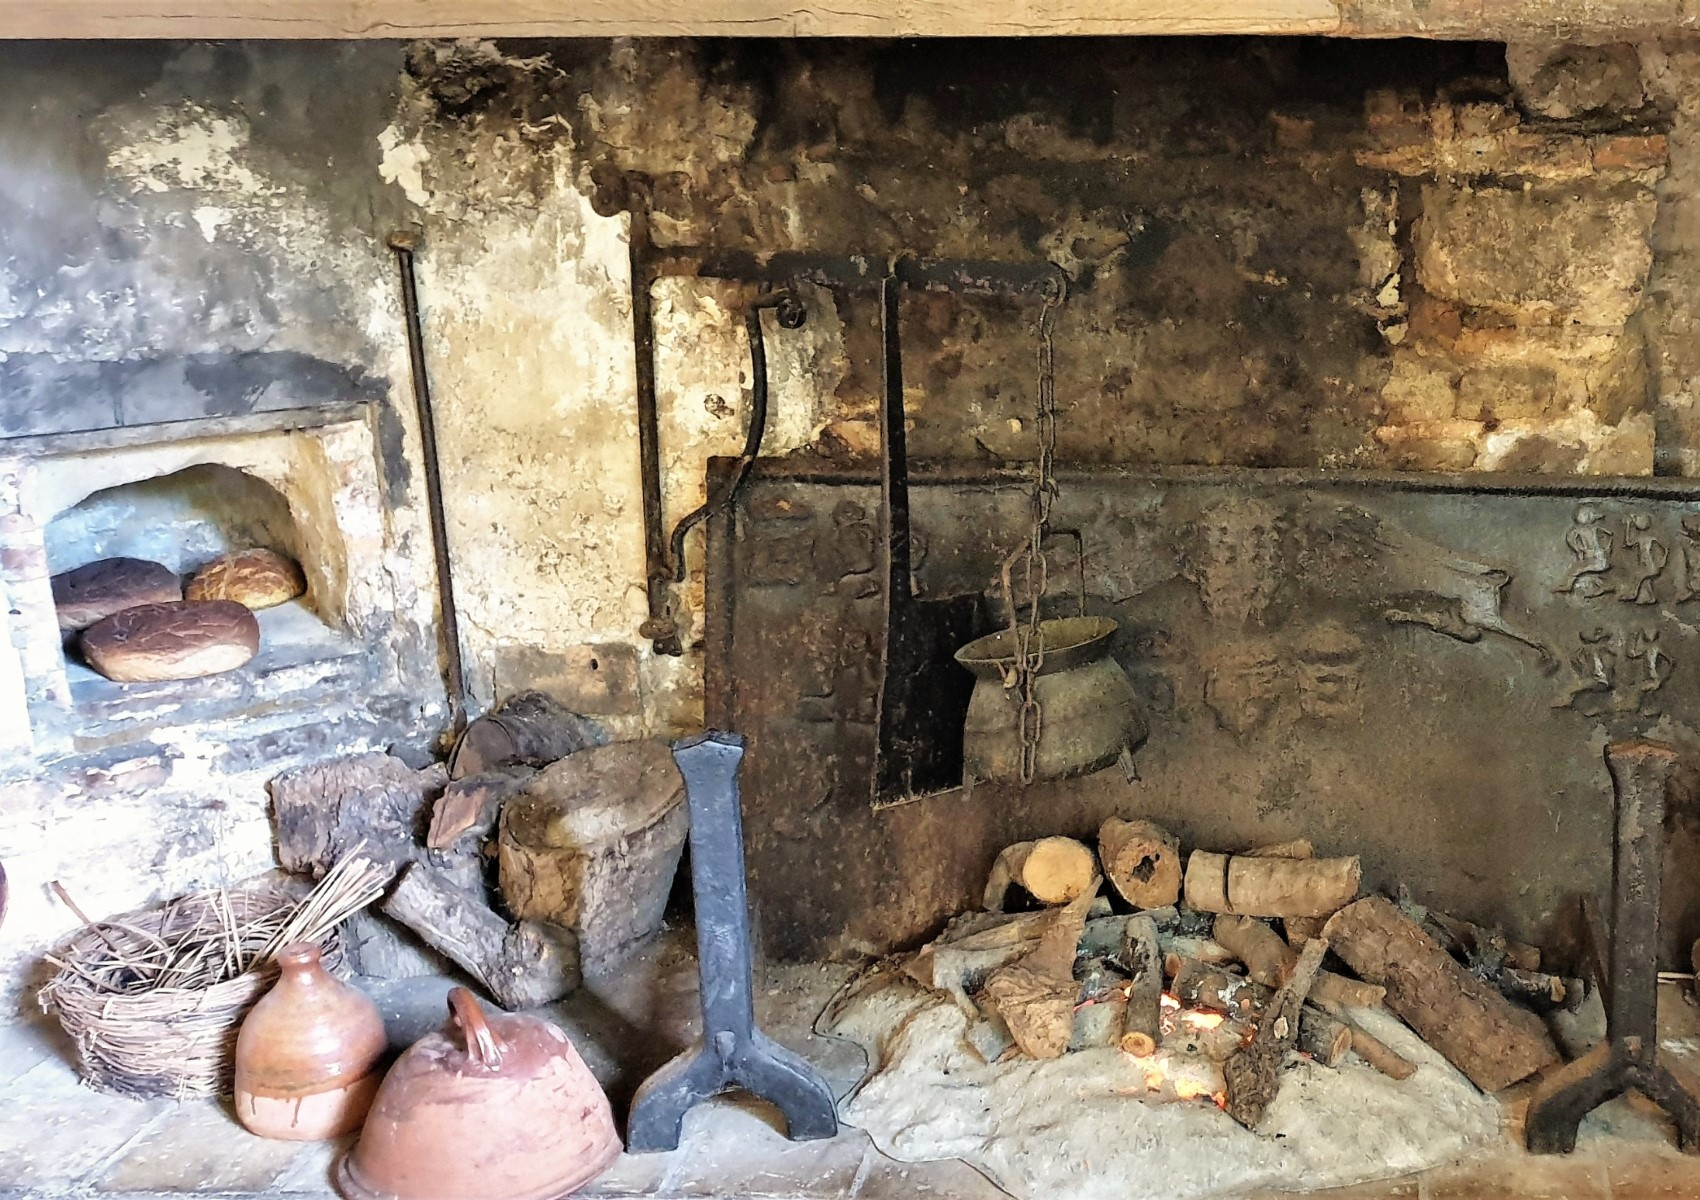 The old fireplace in Oliver Cromwell's house, which is now a museum.